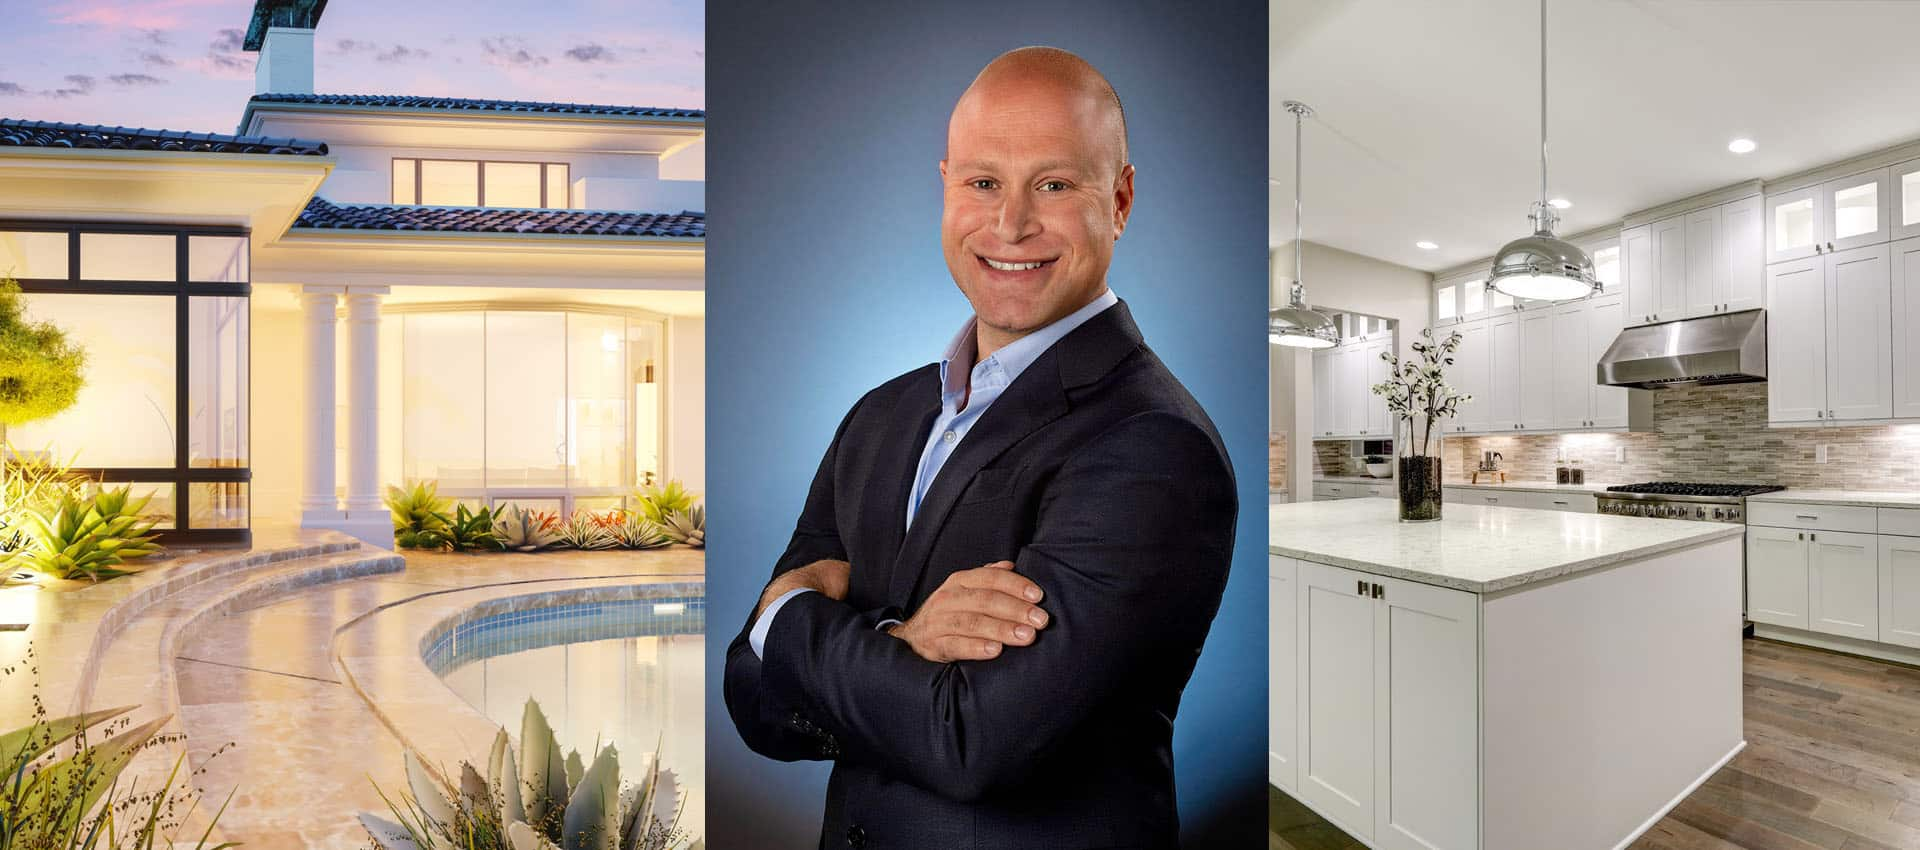 Calabasas Realtor and Real Estate Agent David Salmanson